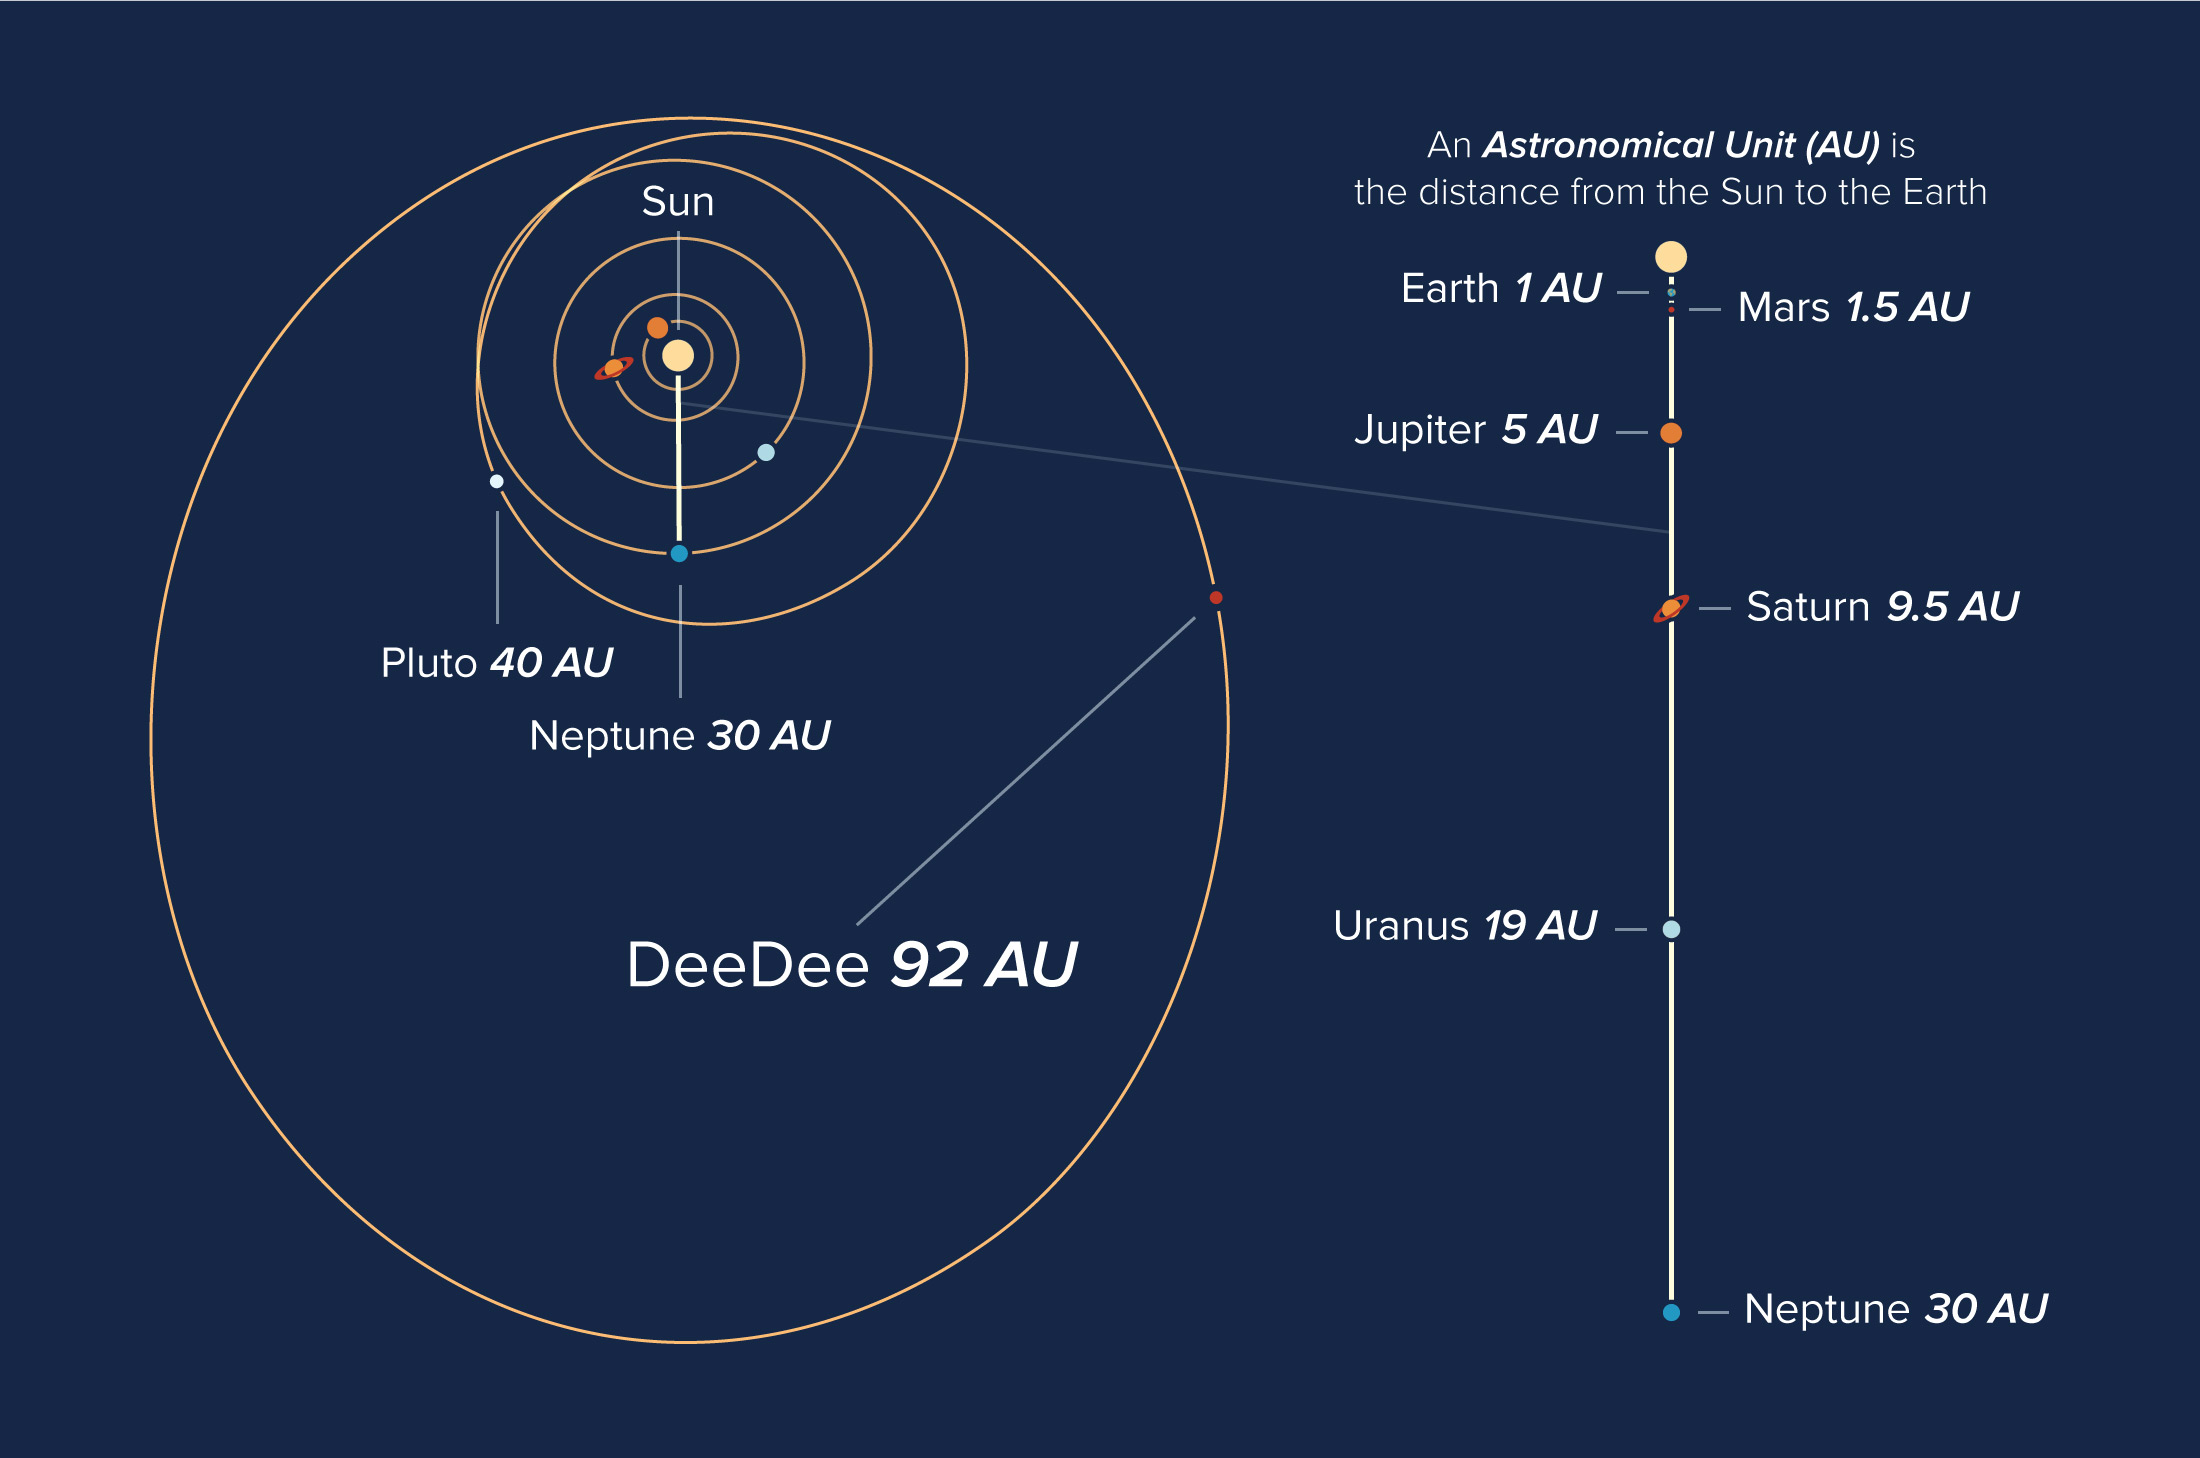 DeeDee is very far away and its orbit can be compared to the planets in our Solar System.